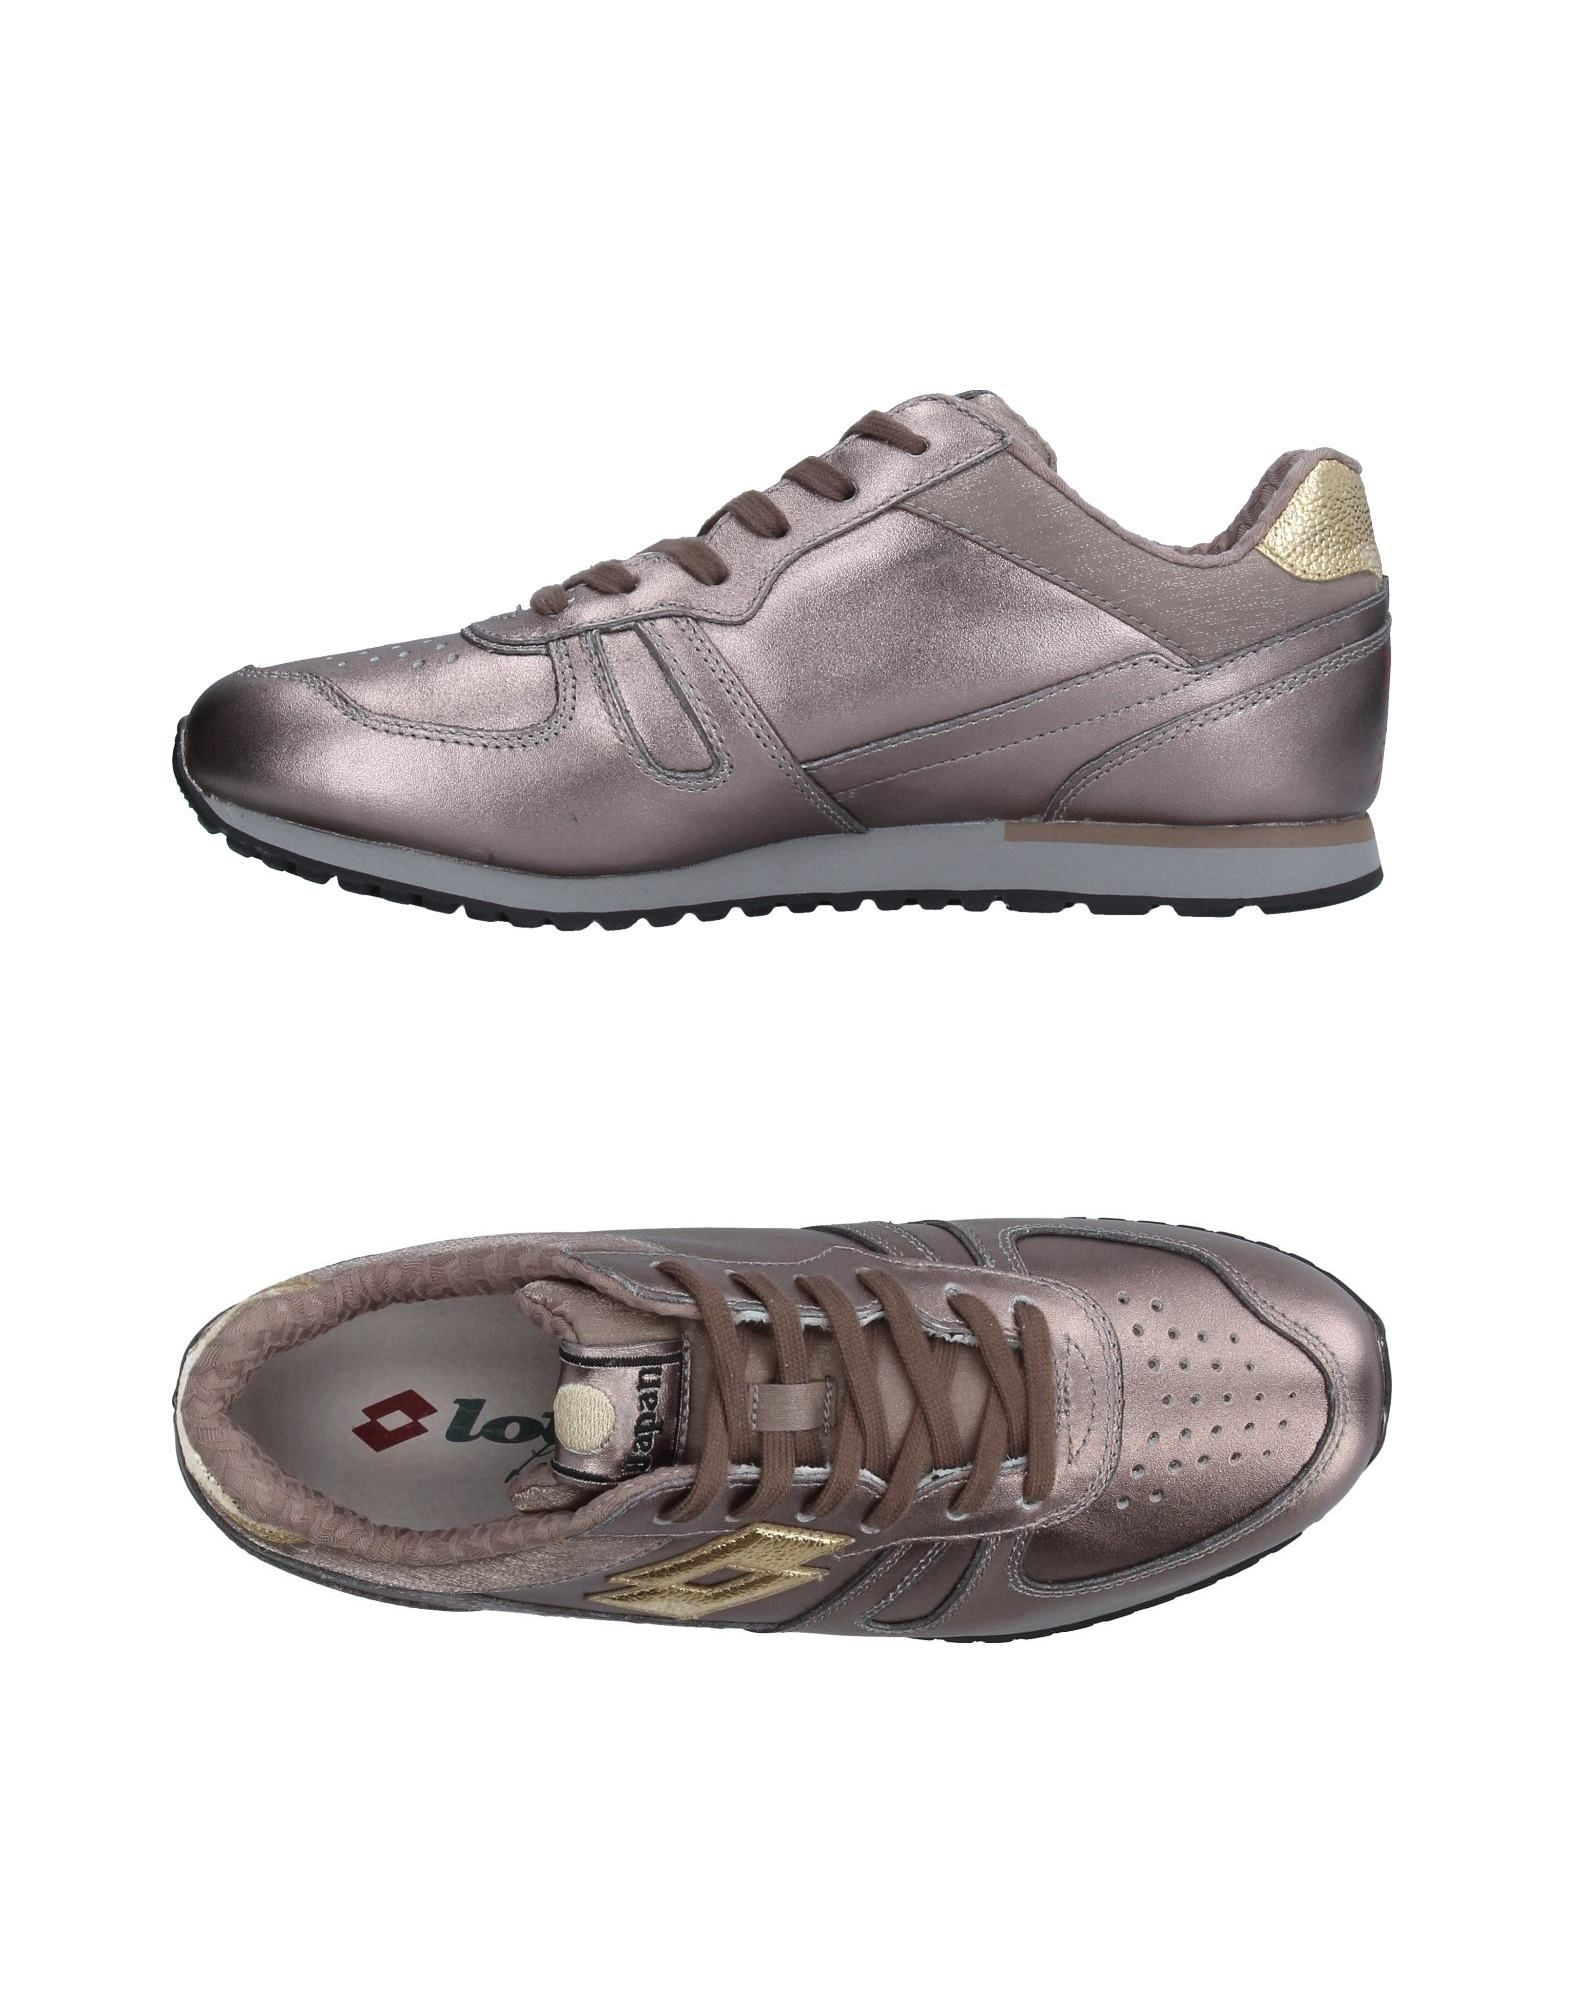 Lotto Leggenda Sneakers - Women Lotto Leggenda Sneakers Australia online on  Australia Sneakers - 11234719UH e9443a